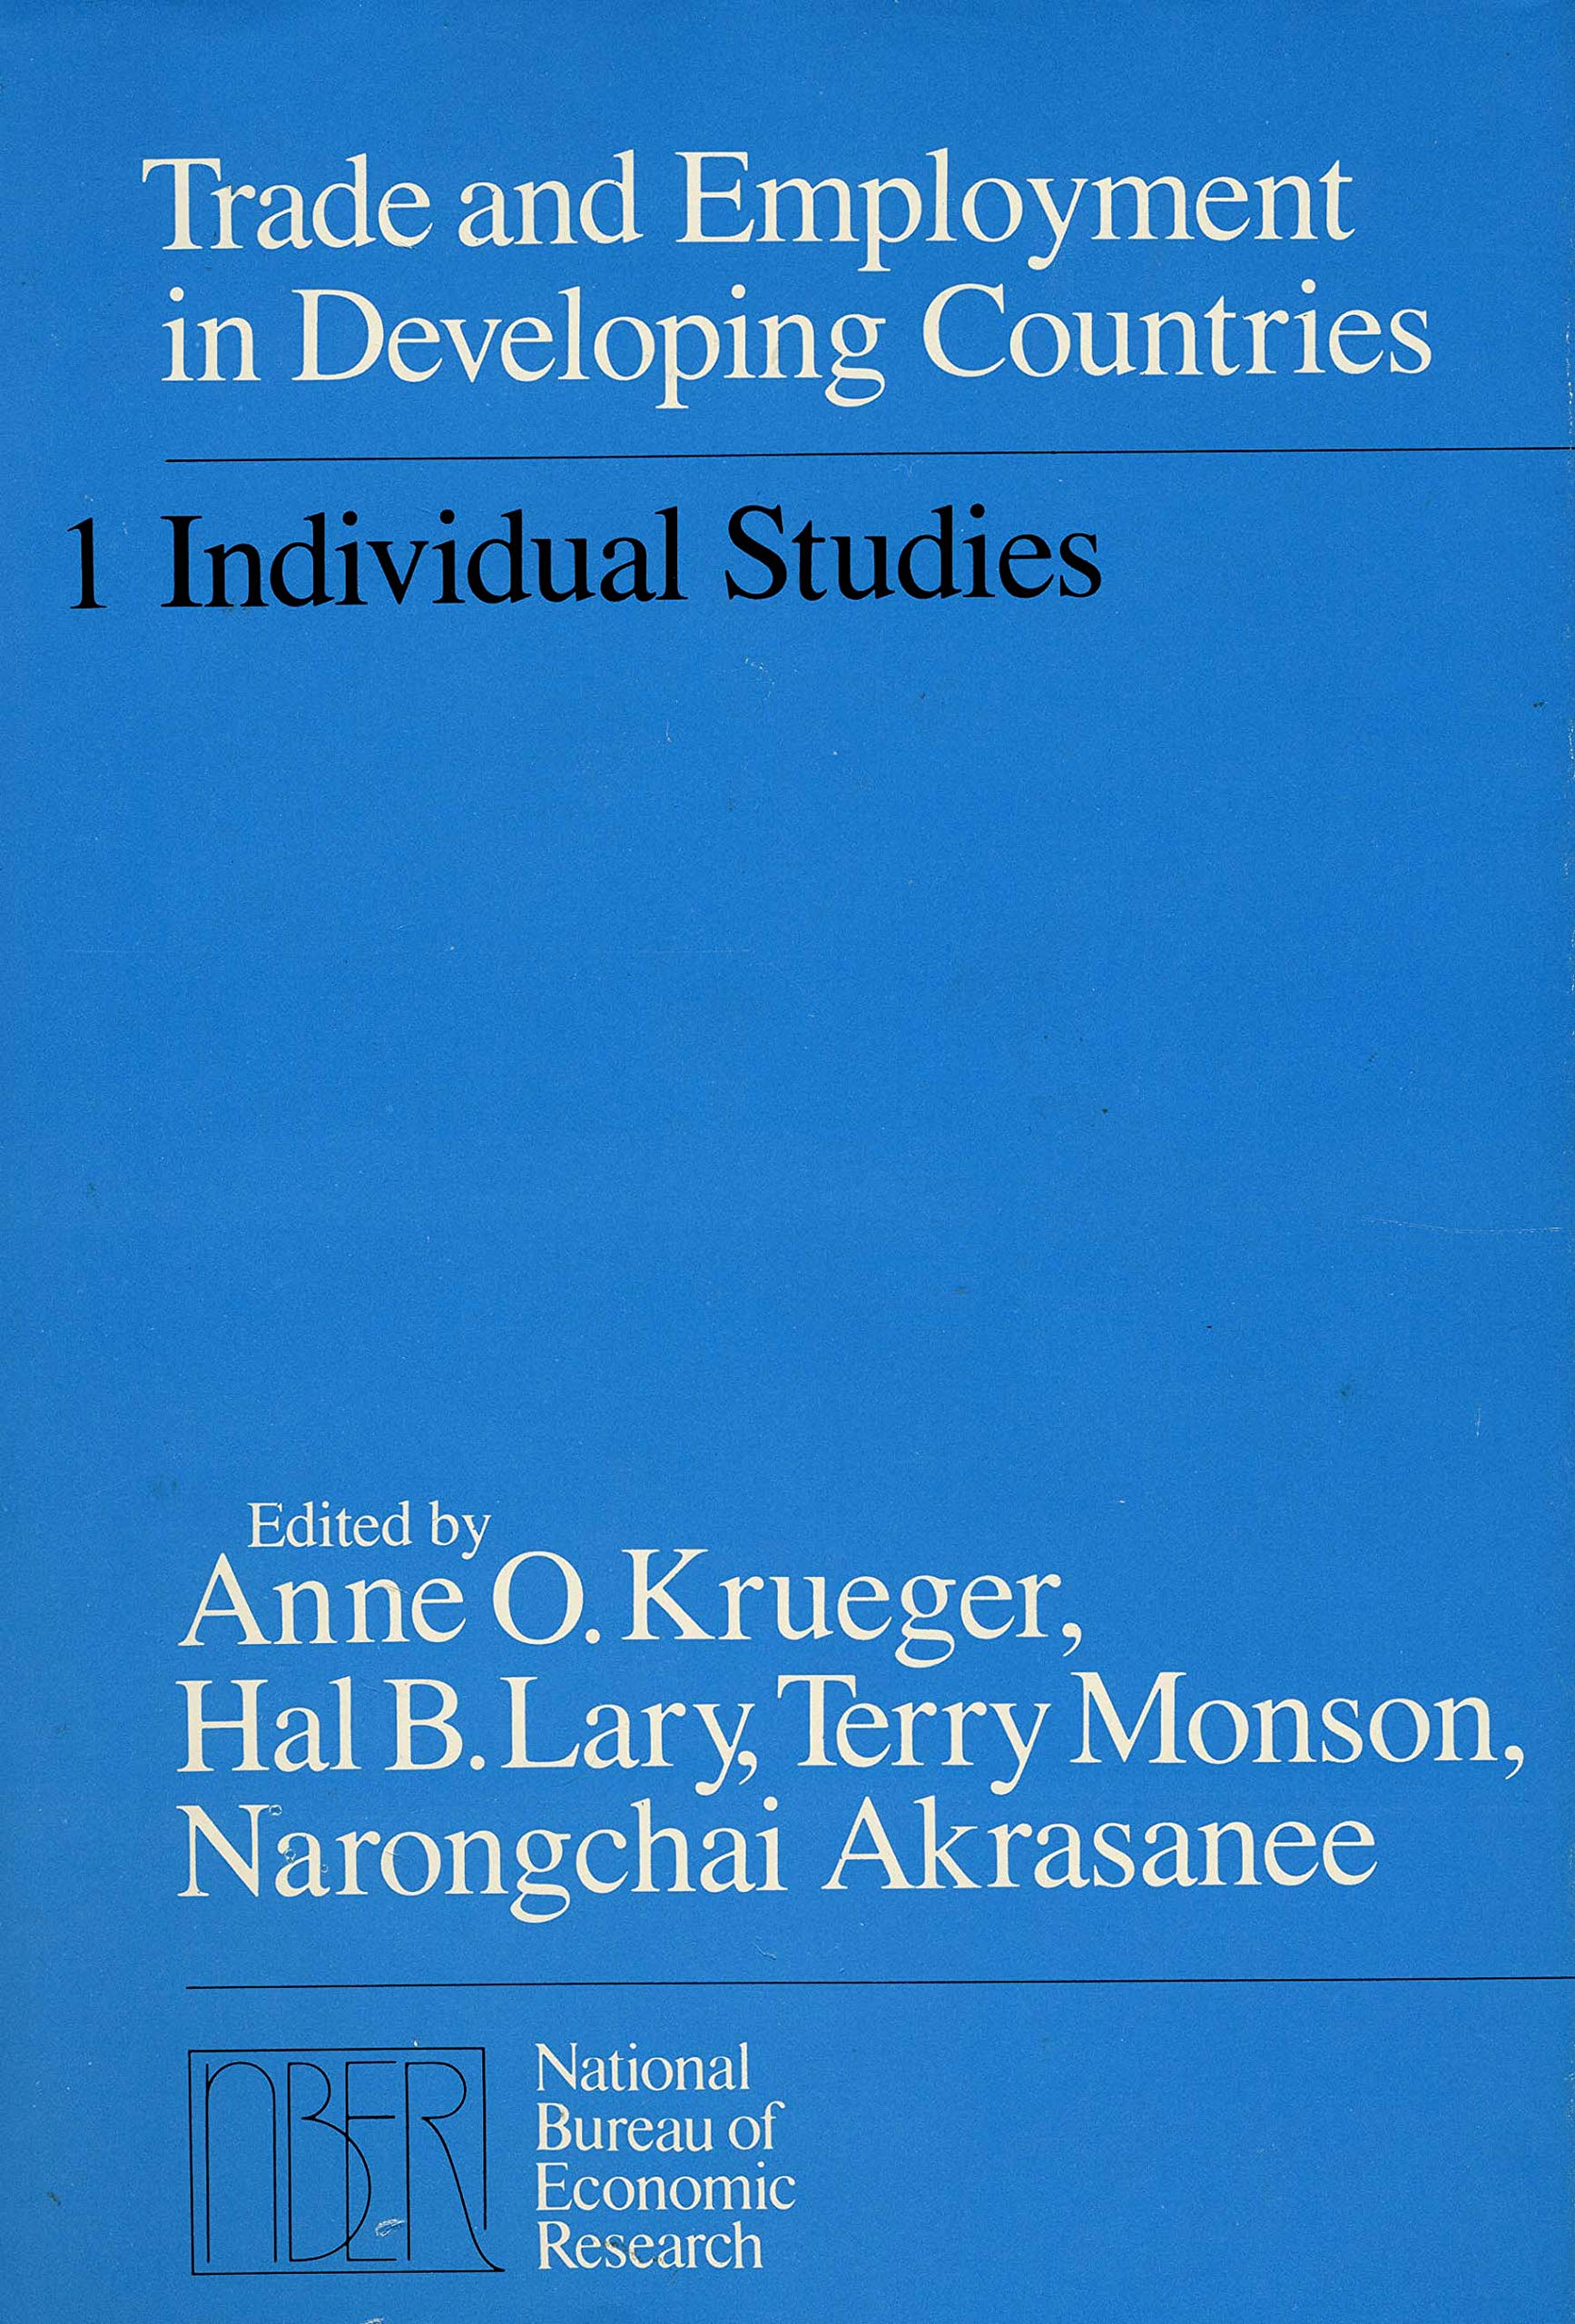 Trade and Employment in Developing Countries, Volume 1: Individual Studies (National Bureau of Economic Research Monograph)